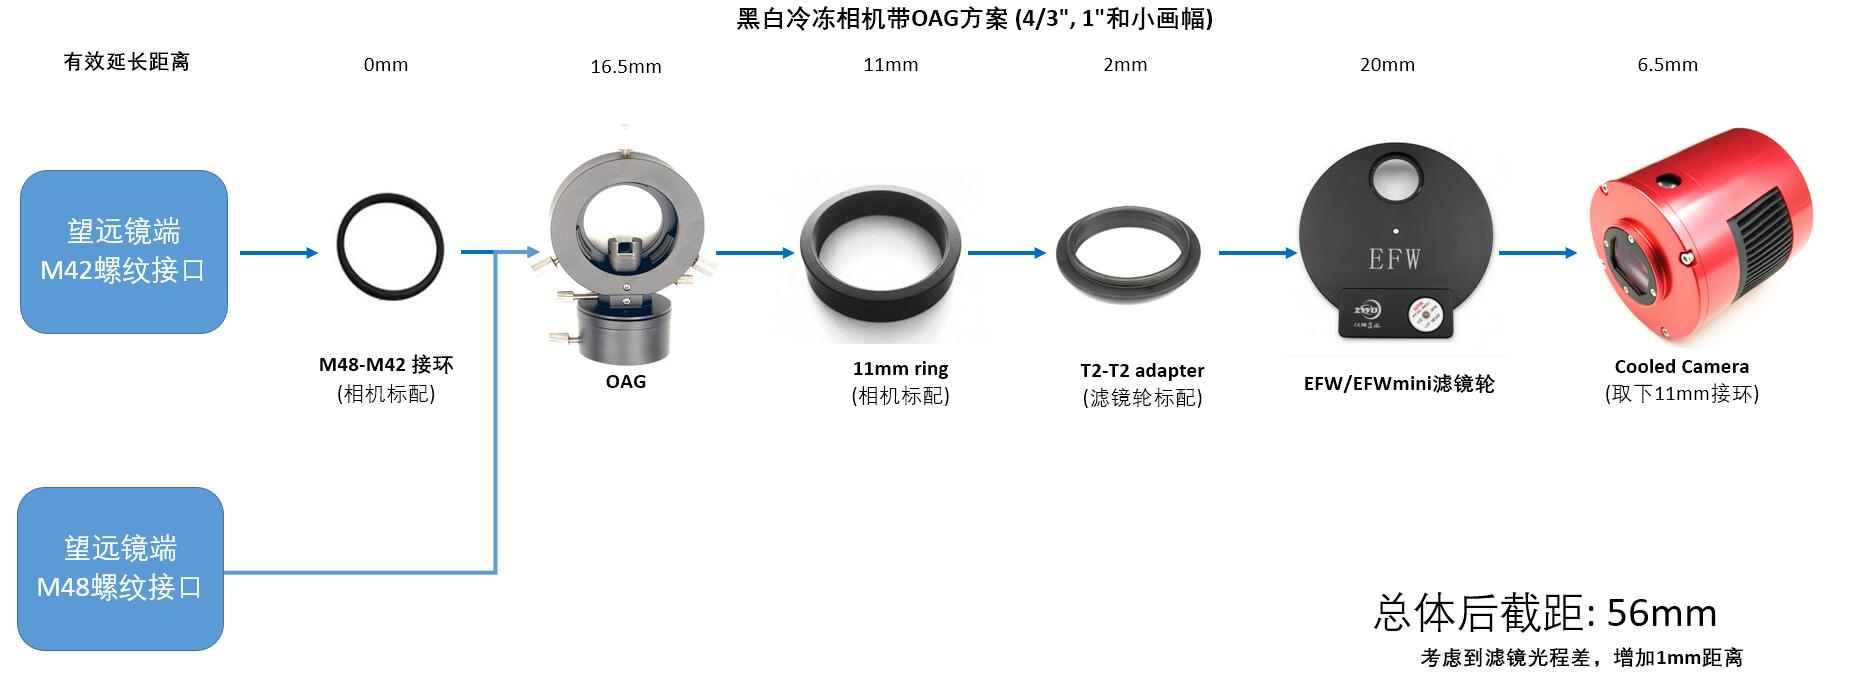 Cooled Mono Camera with OAG solution(中文).jpg